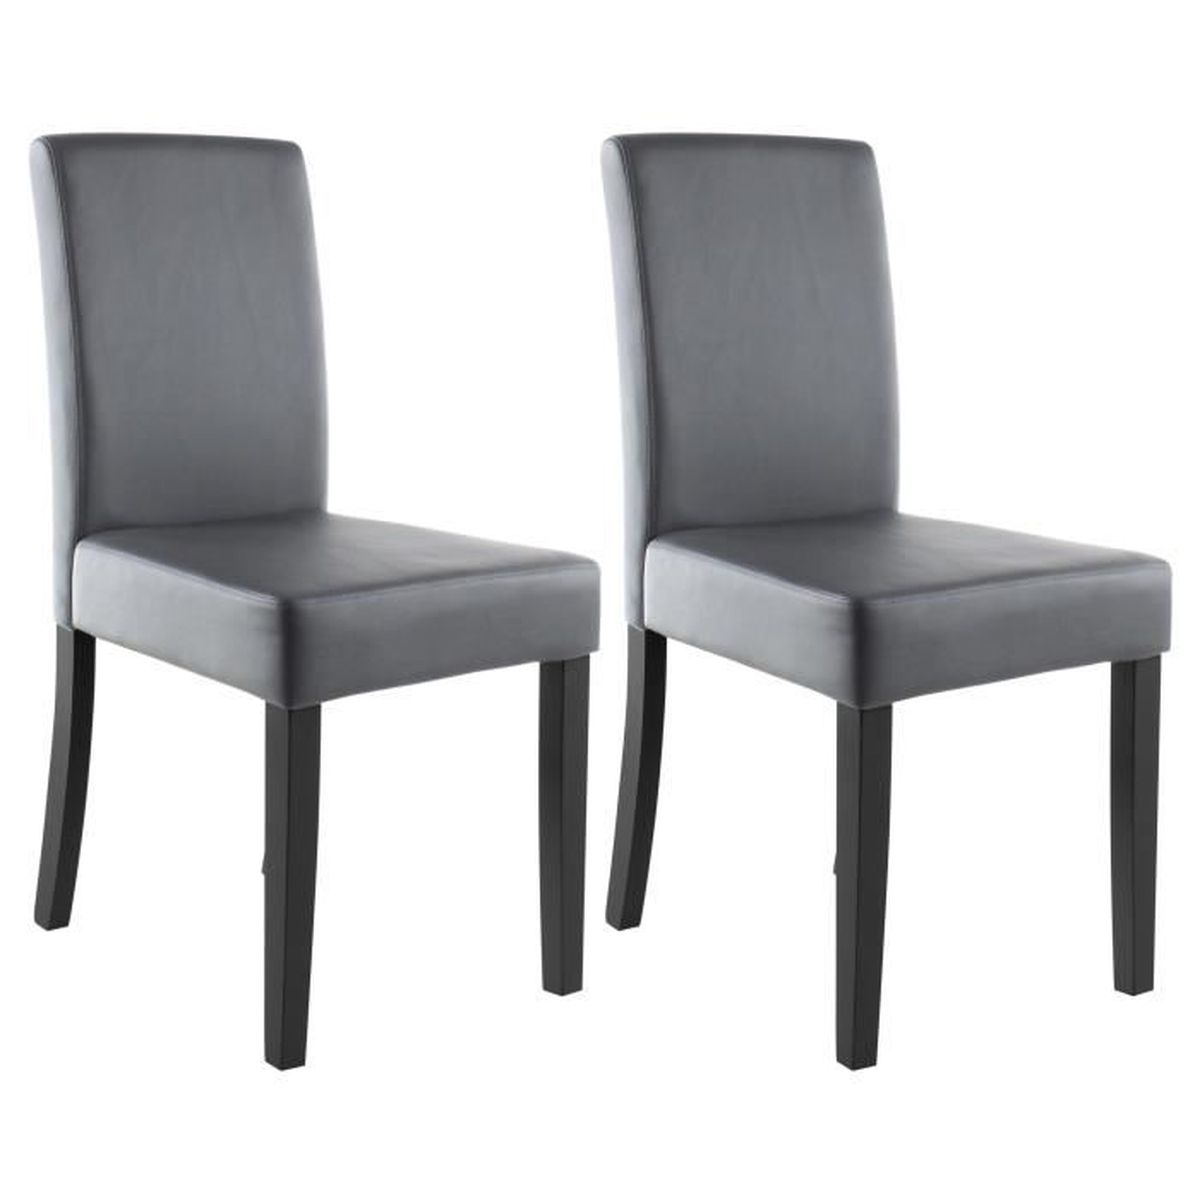 Clara lot de 2 chaises de salle a manger simili gris for Salle À manger contemporaineavec lot chaises